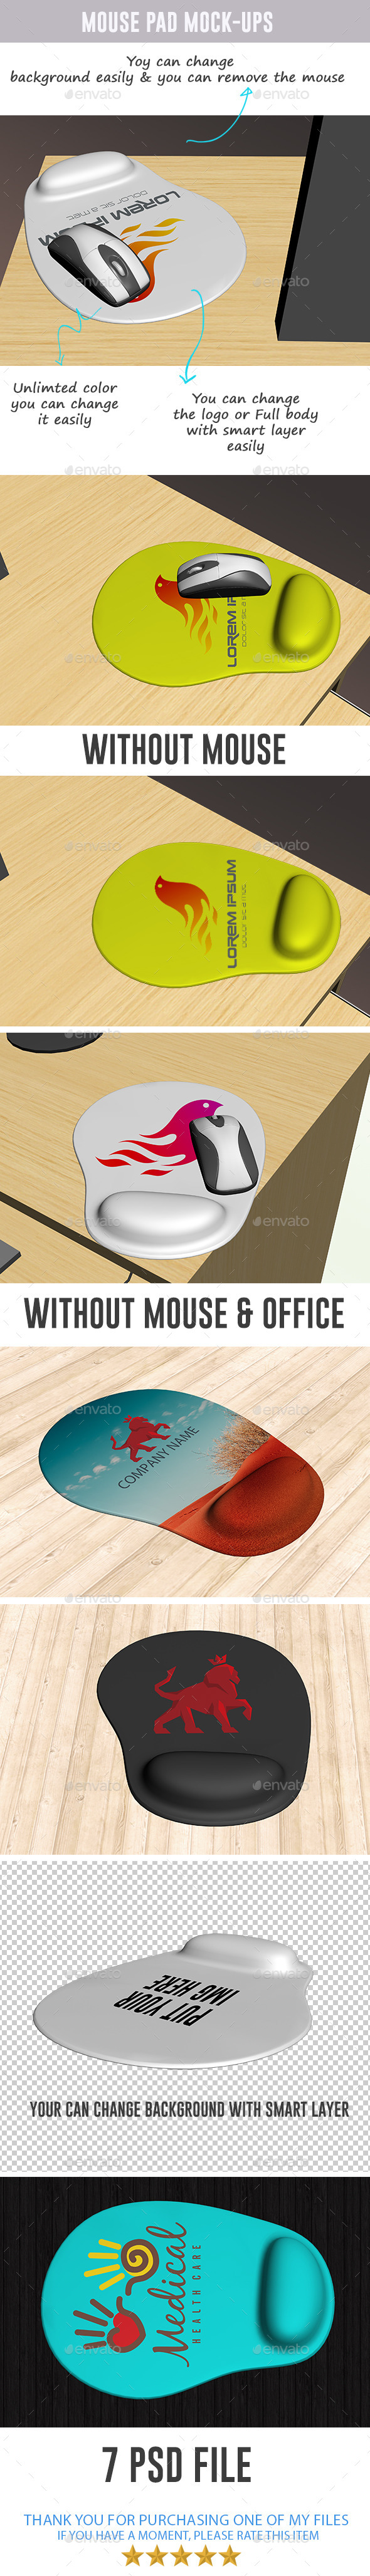 GraphicRiver Mouse Pad Mock-ups 8858032